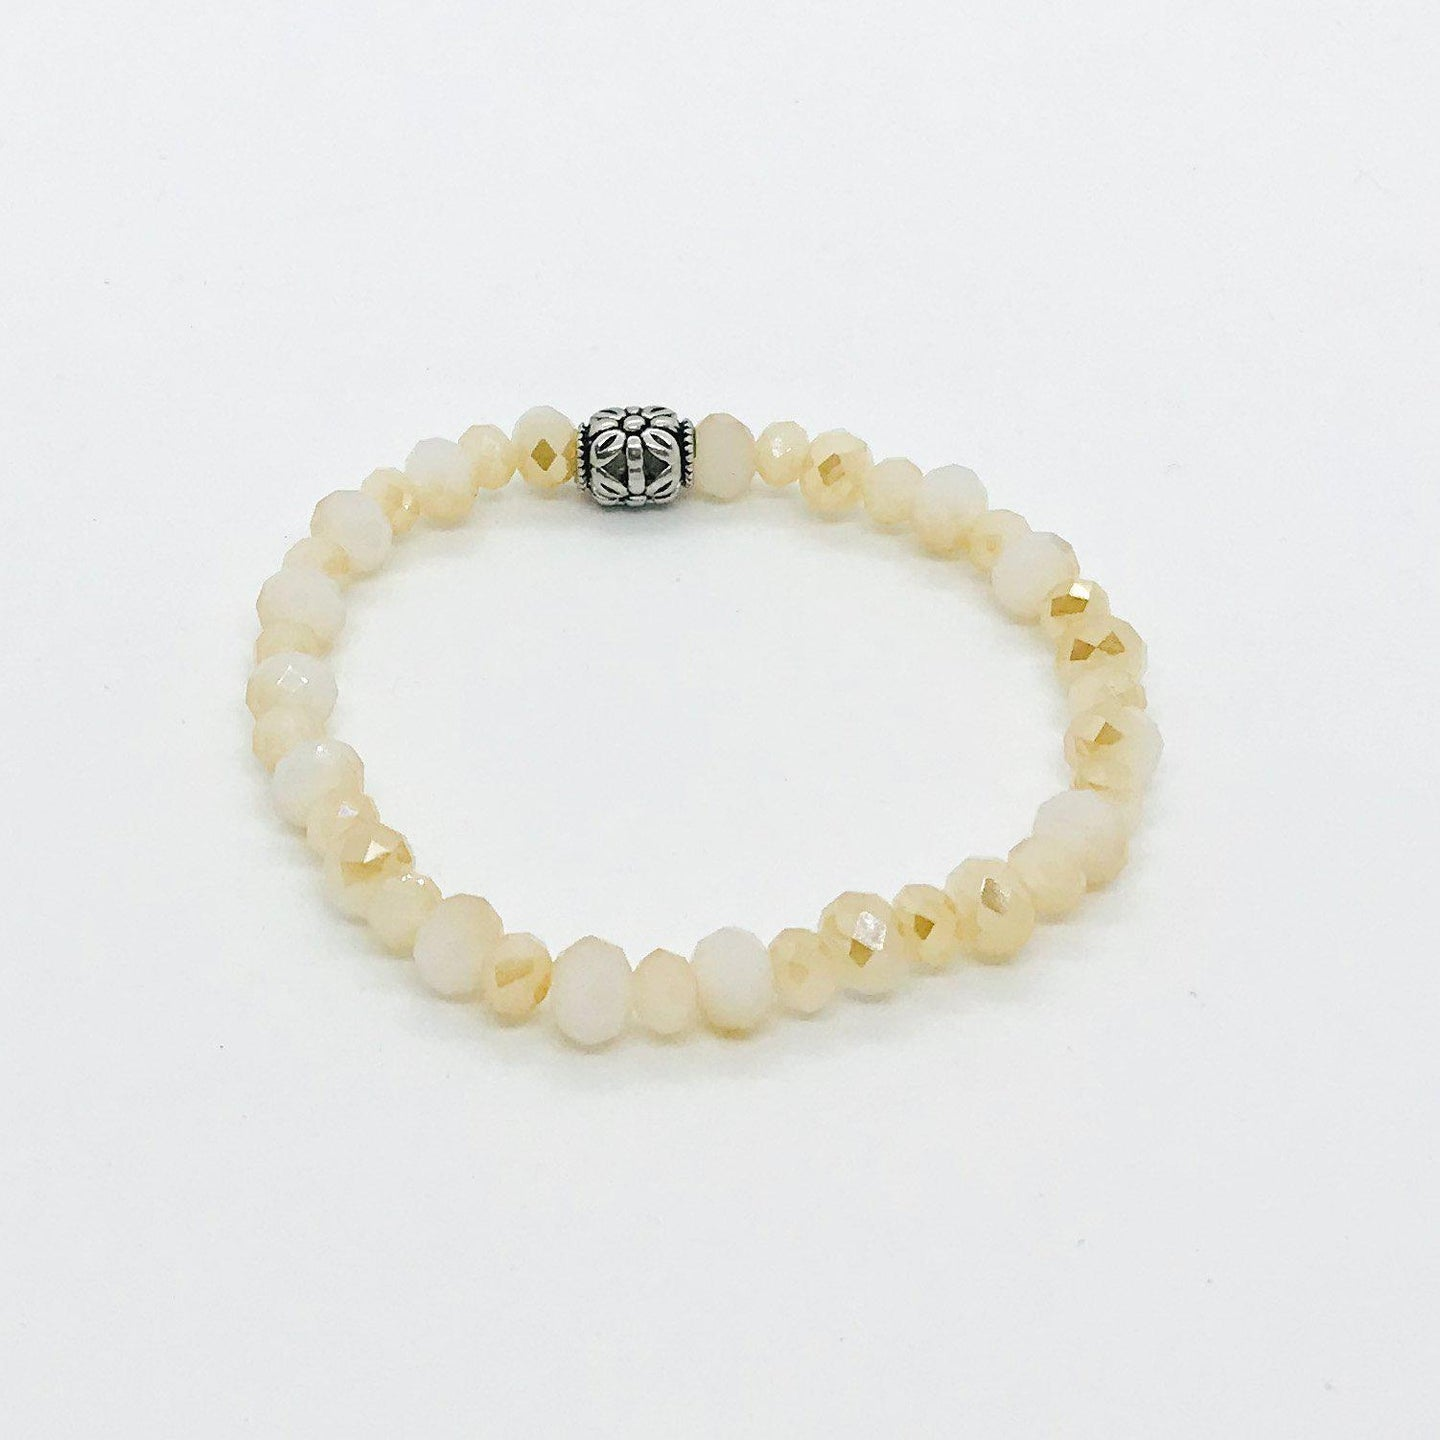 Glass Bead Stretchy Bracelet - B964